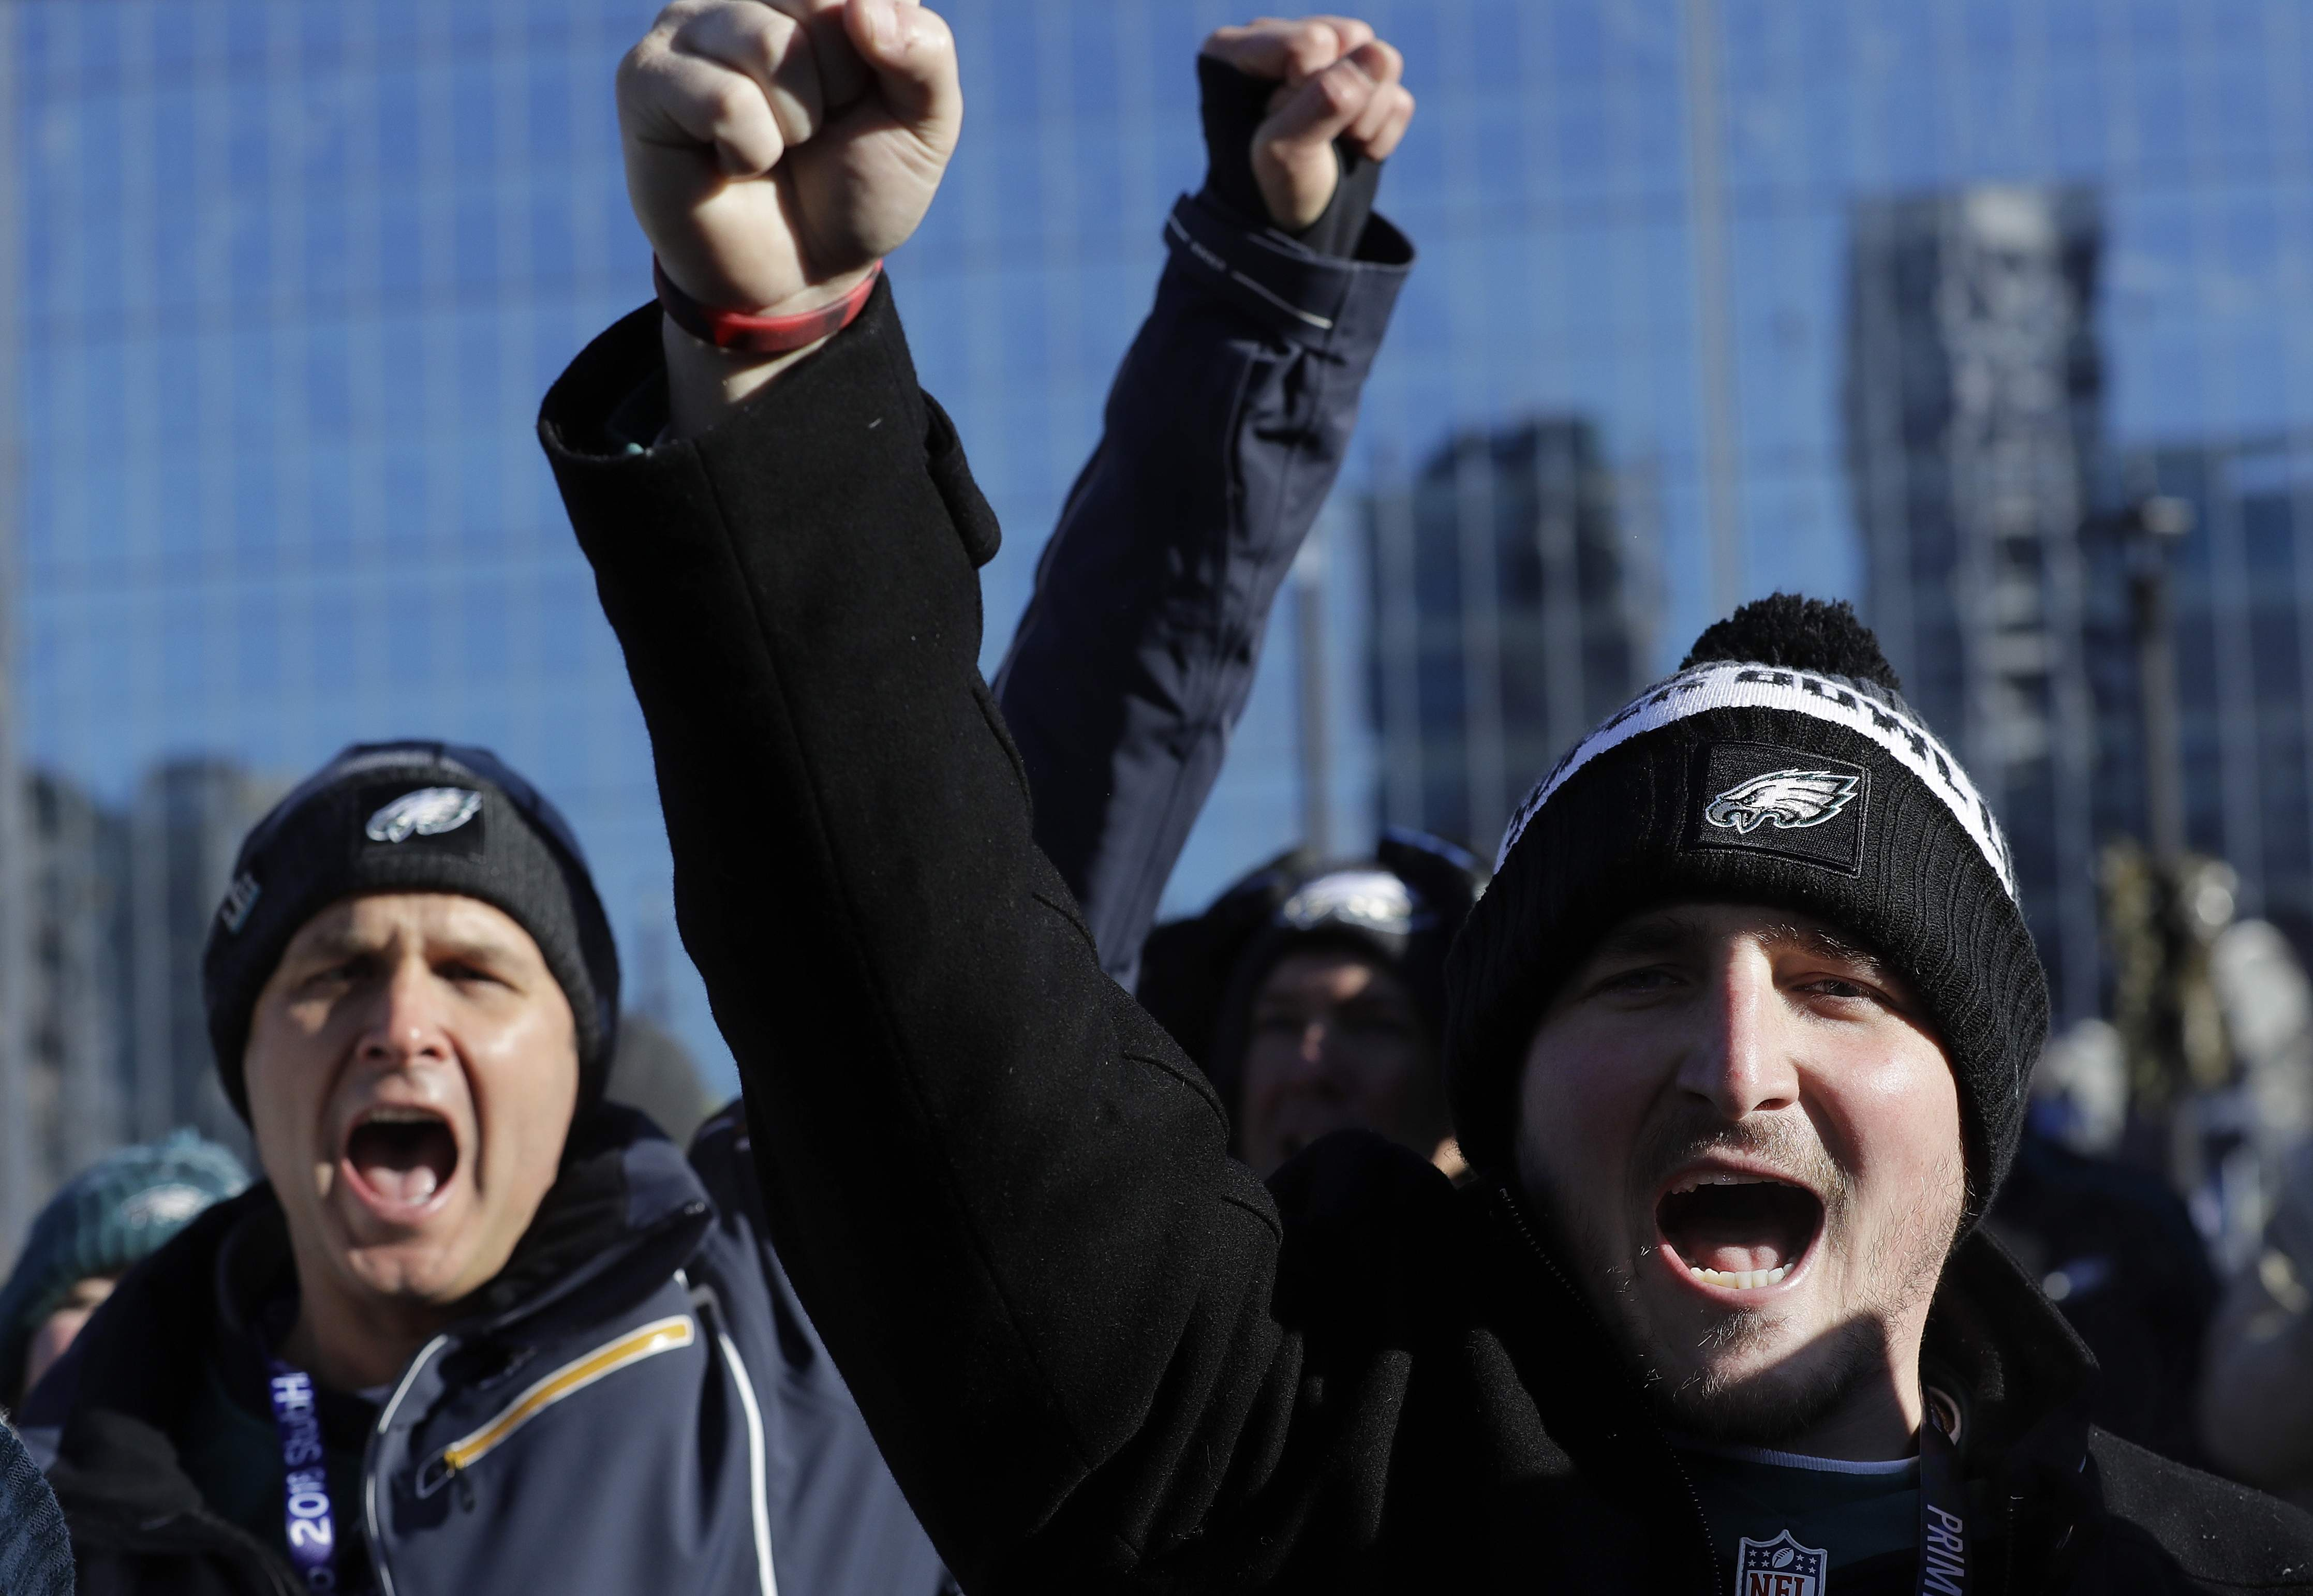 Philadelphia Eagles fans cheer outside U.S. Bank Stadium before the NFL Super Bowl 52 football game against the New England Patriots Sunday, Feb. 4, 2018, in Minneapolis. (AP Photo/Eric Gay)